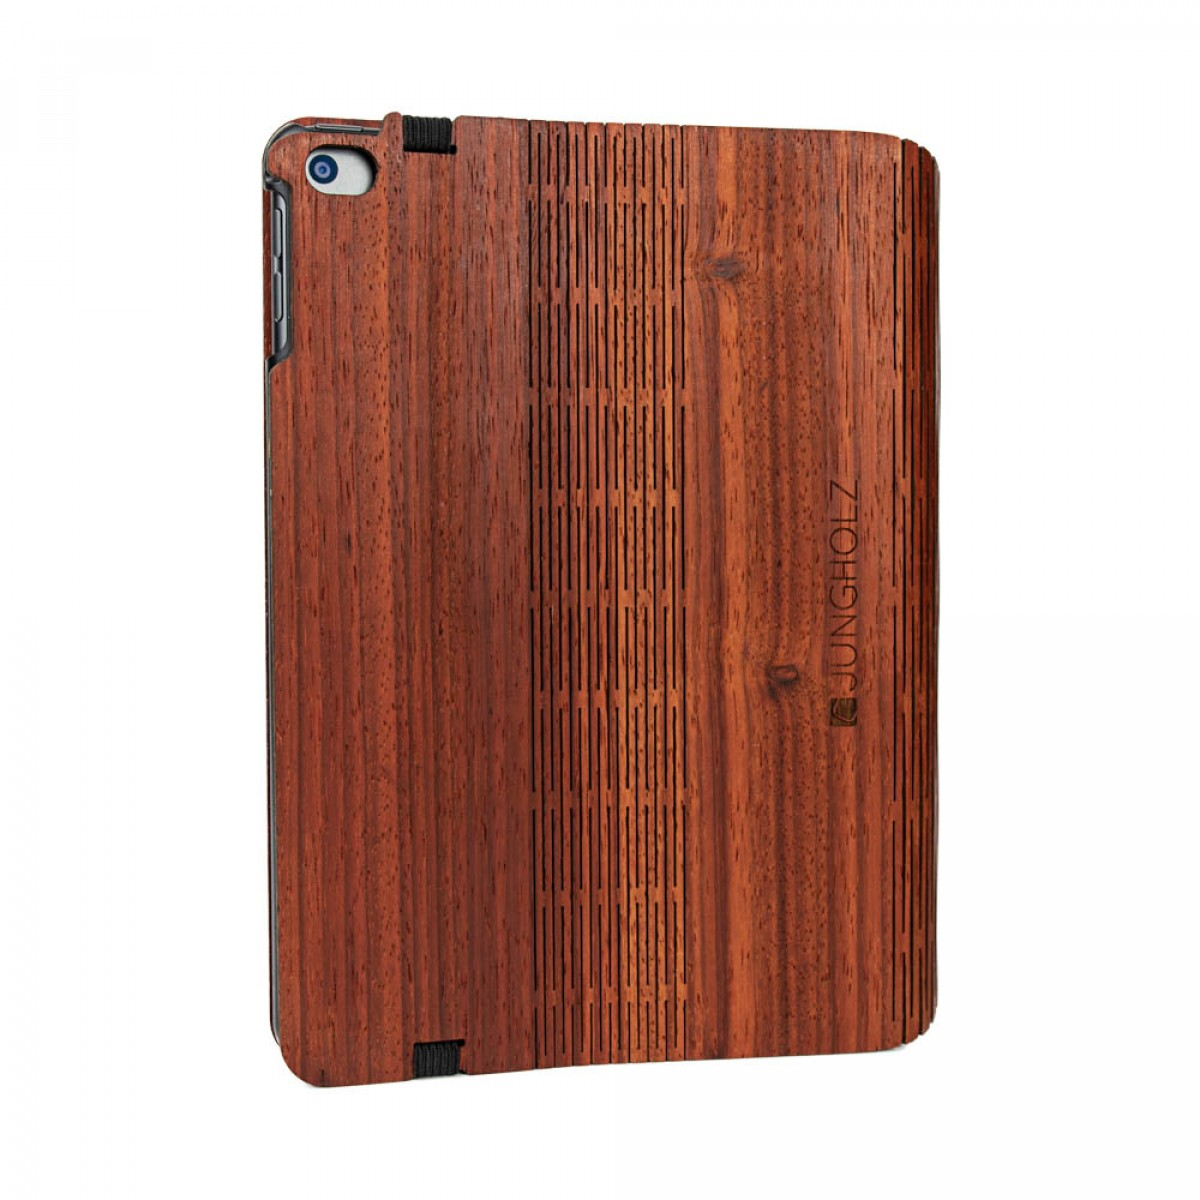 JUNGHOLZ Design WoodCase, Tablet, Padouk, iPad Mini 5.Generation